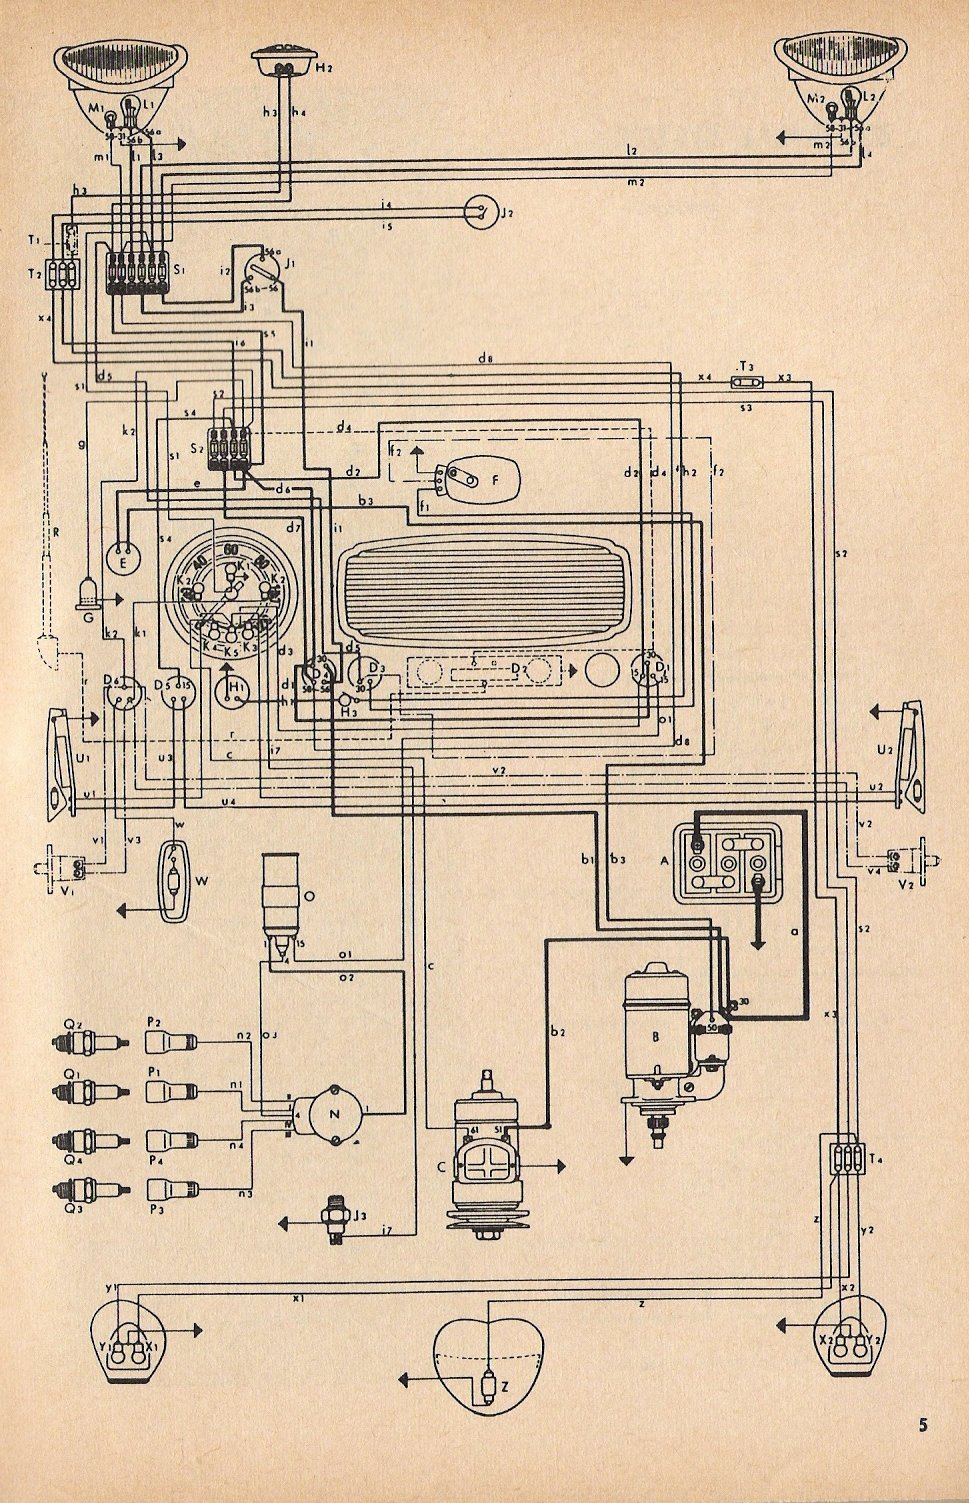 1967 Vw Bug Wiring Harness Archive Of Automotive Diagram Thesamba Com Type 1 Diagrams Rh Engine Rebuild Kit